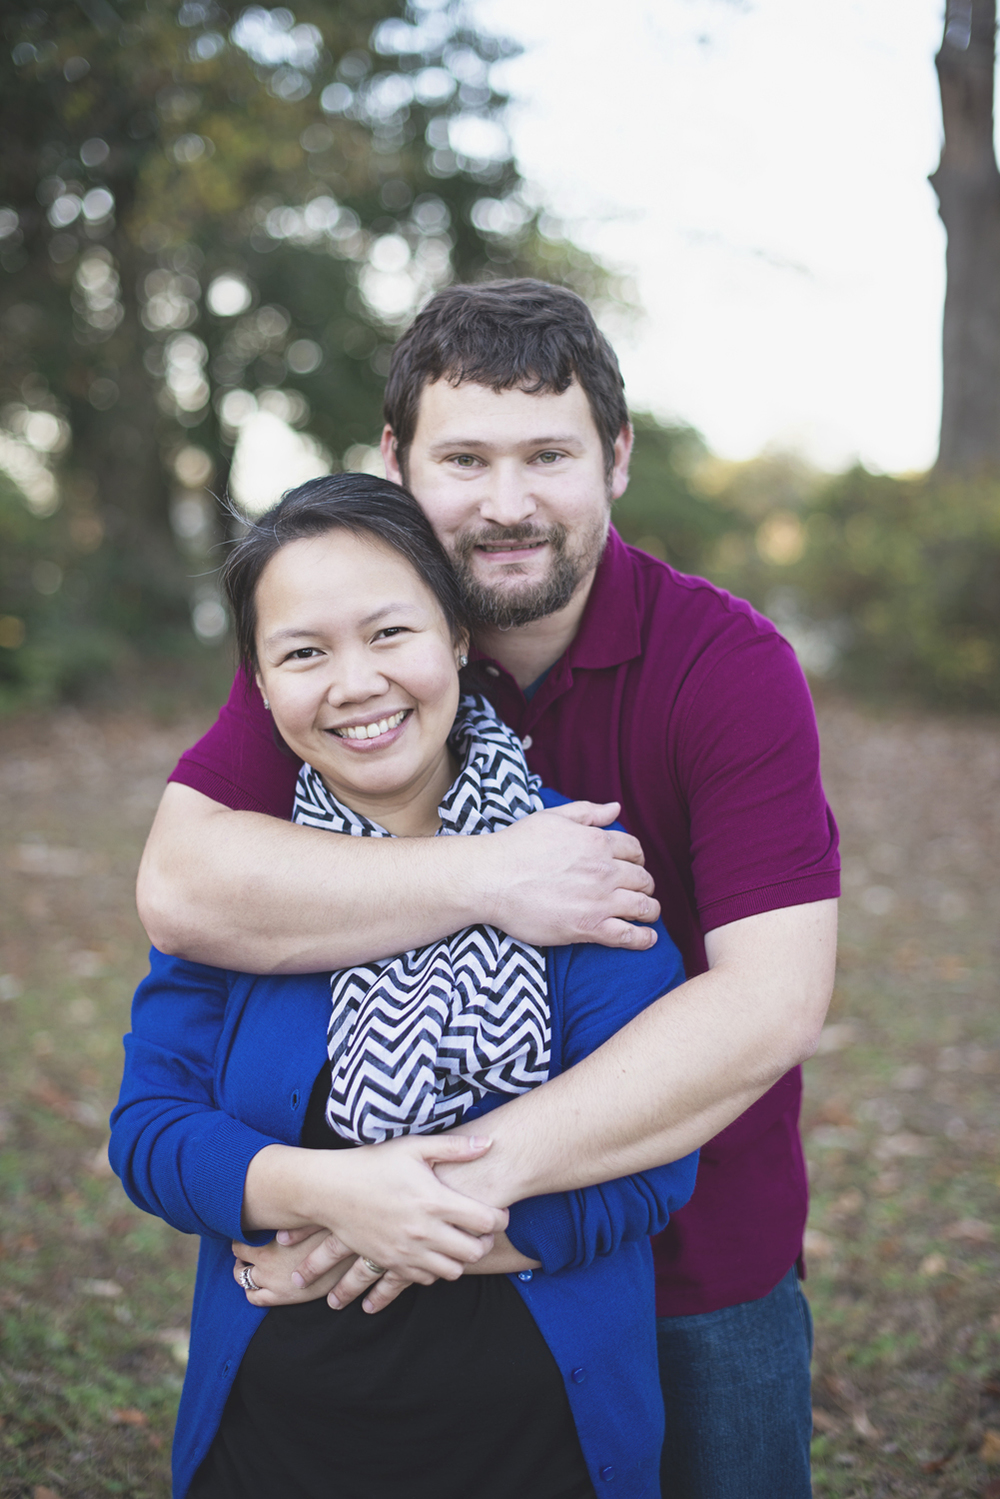 Suffolk, Virginia Family Photographer | Fall couples picture ideas